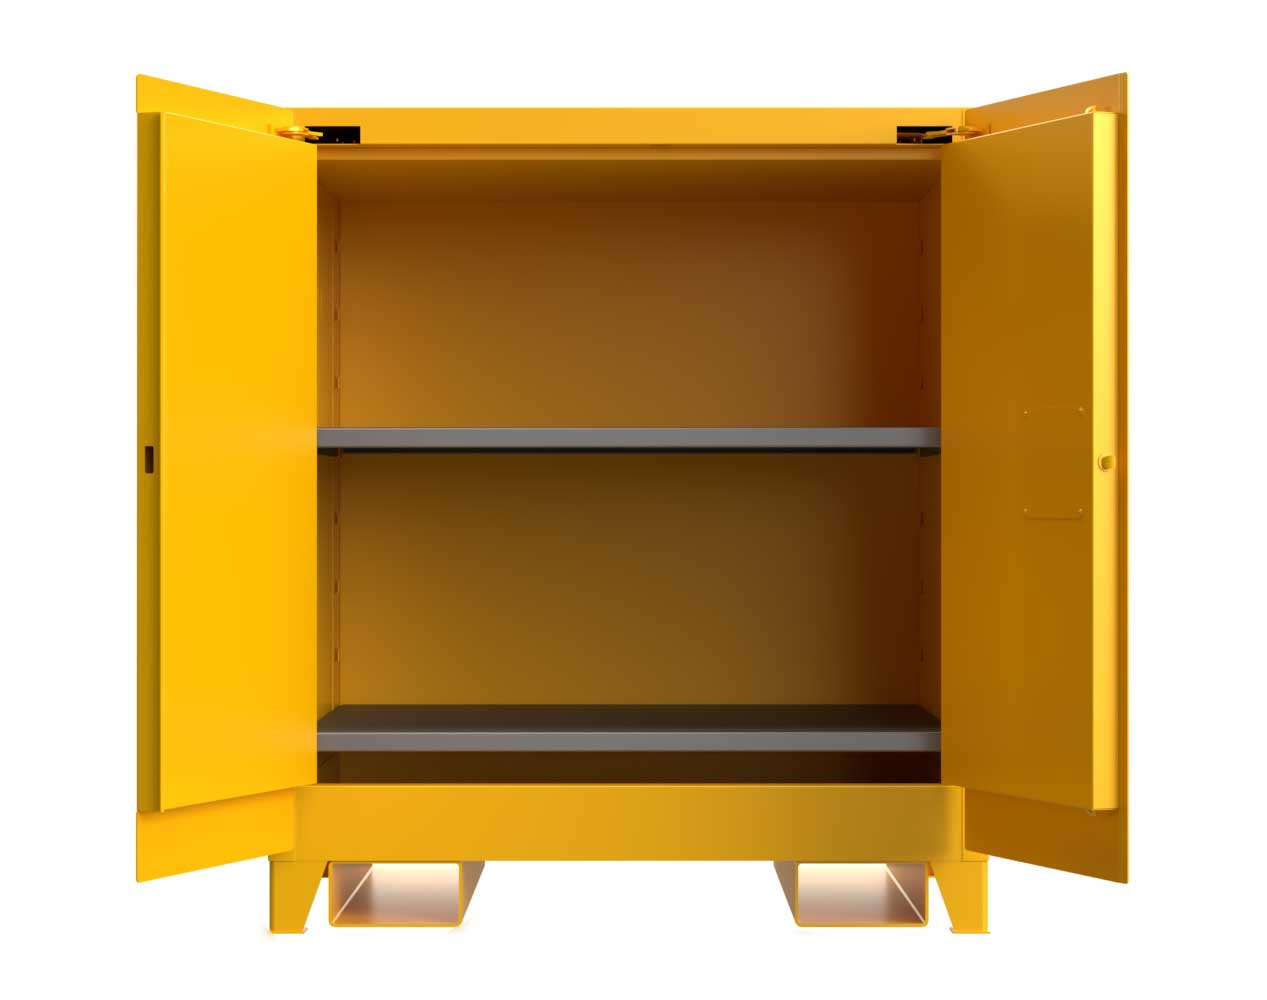 Extra Heavy Duty 14 GA 60 Gallon Flammable Safety Cabinet with Self-Closing Doors, 2 Shelves, Forklift Pockets – 43 In. W x 34 In. D x 49 In. H